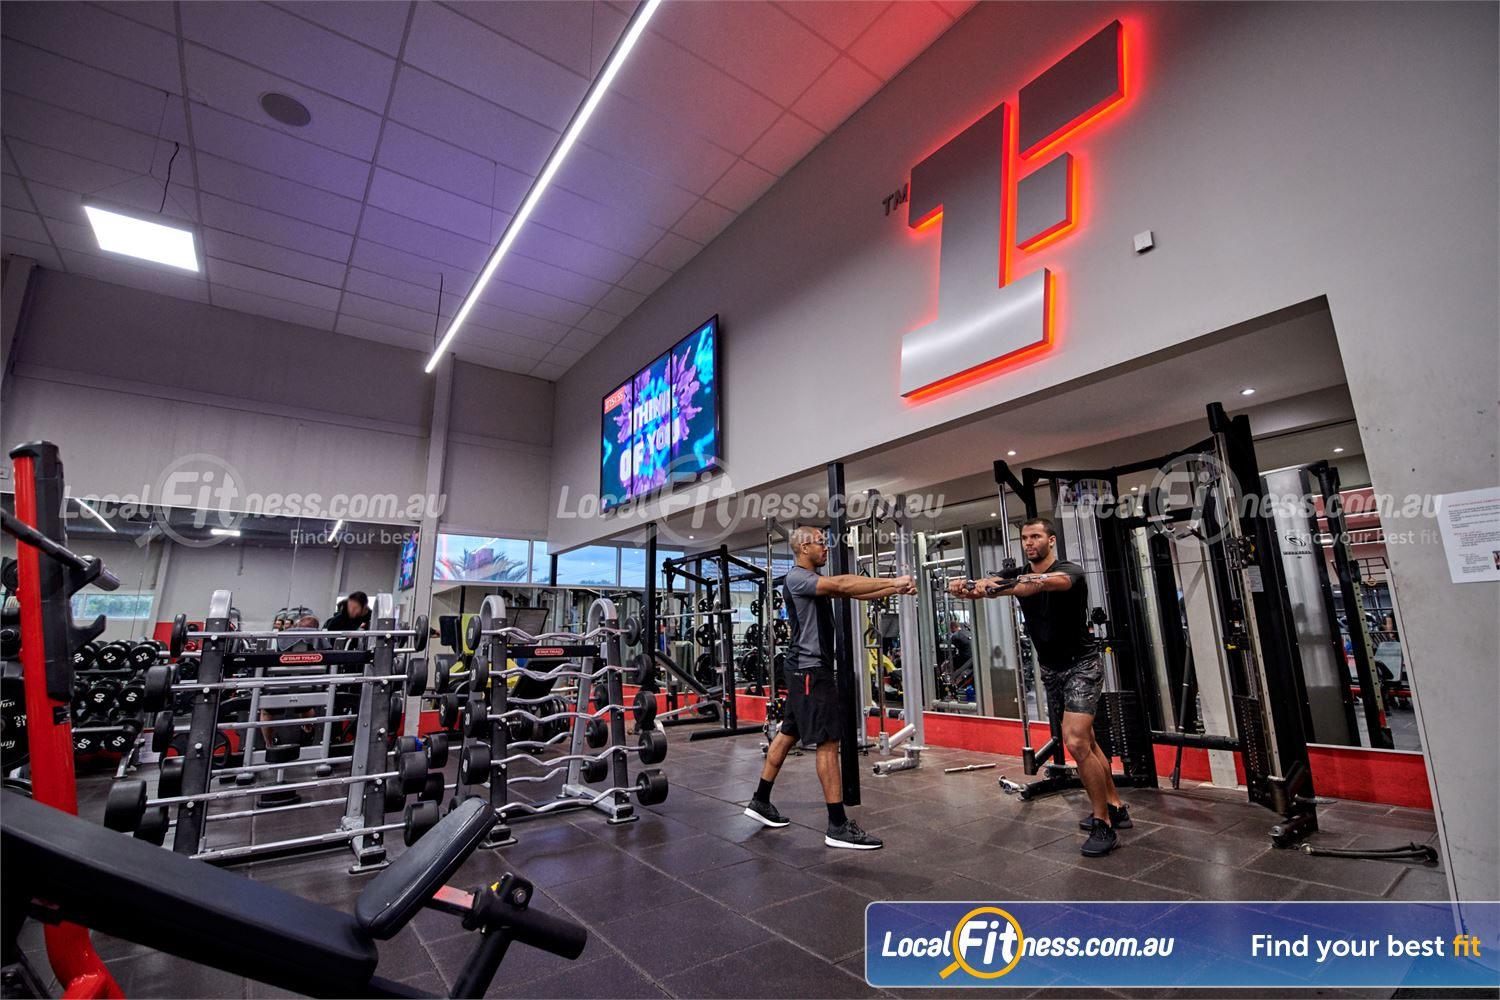 Fitness first a city contact number perfectfitnessclothings